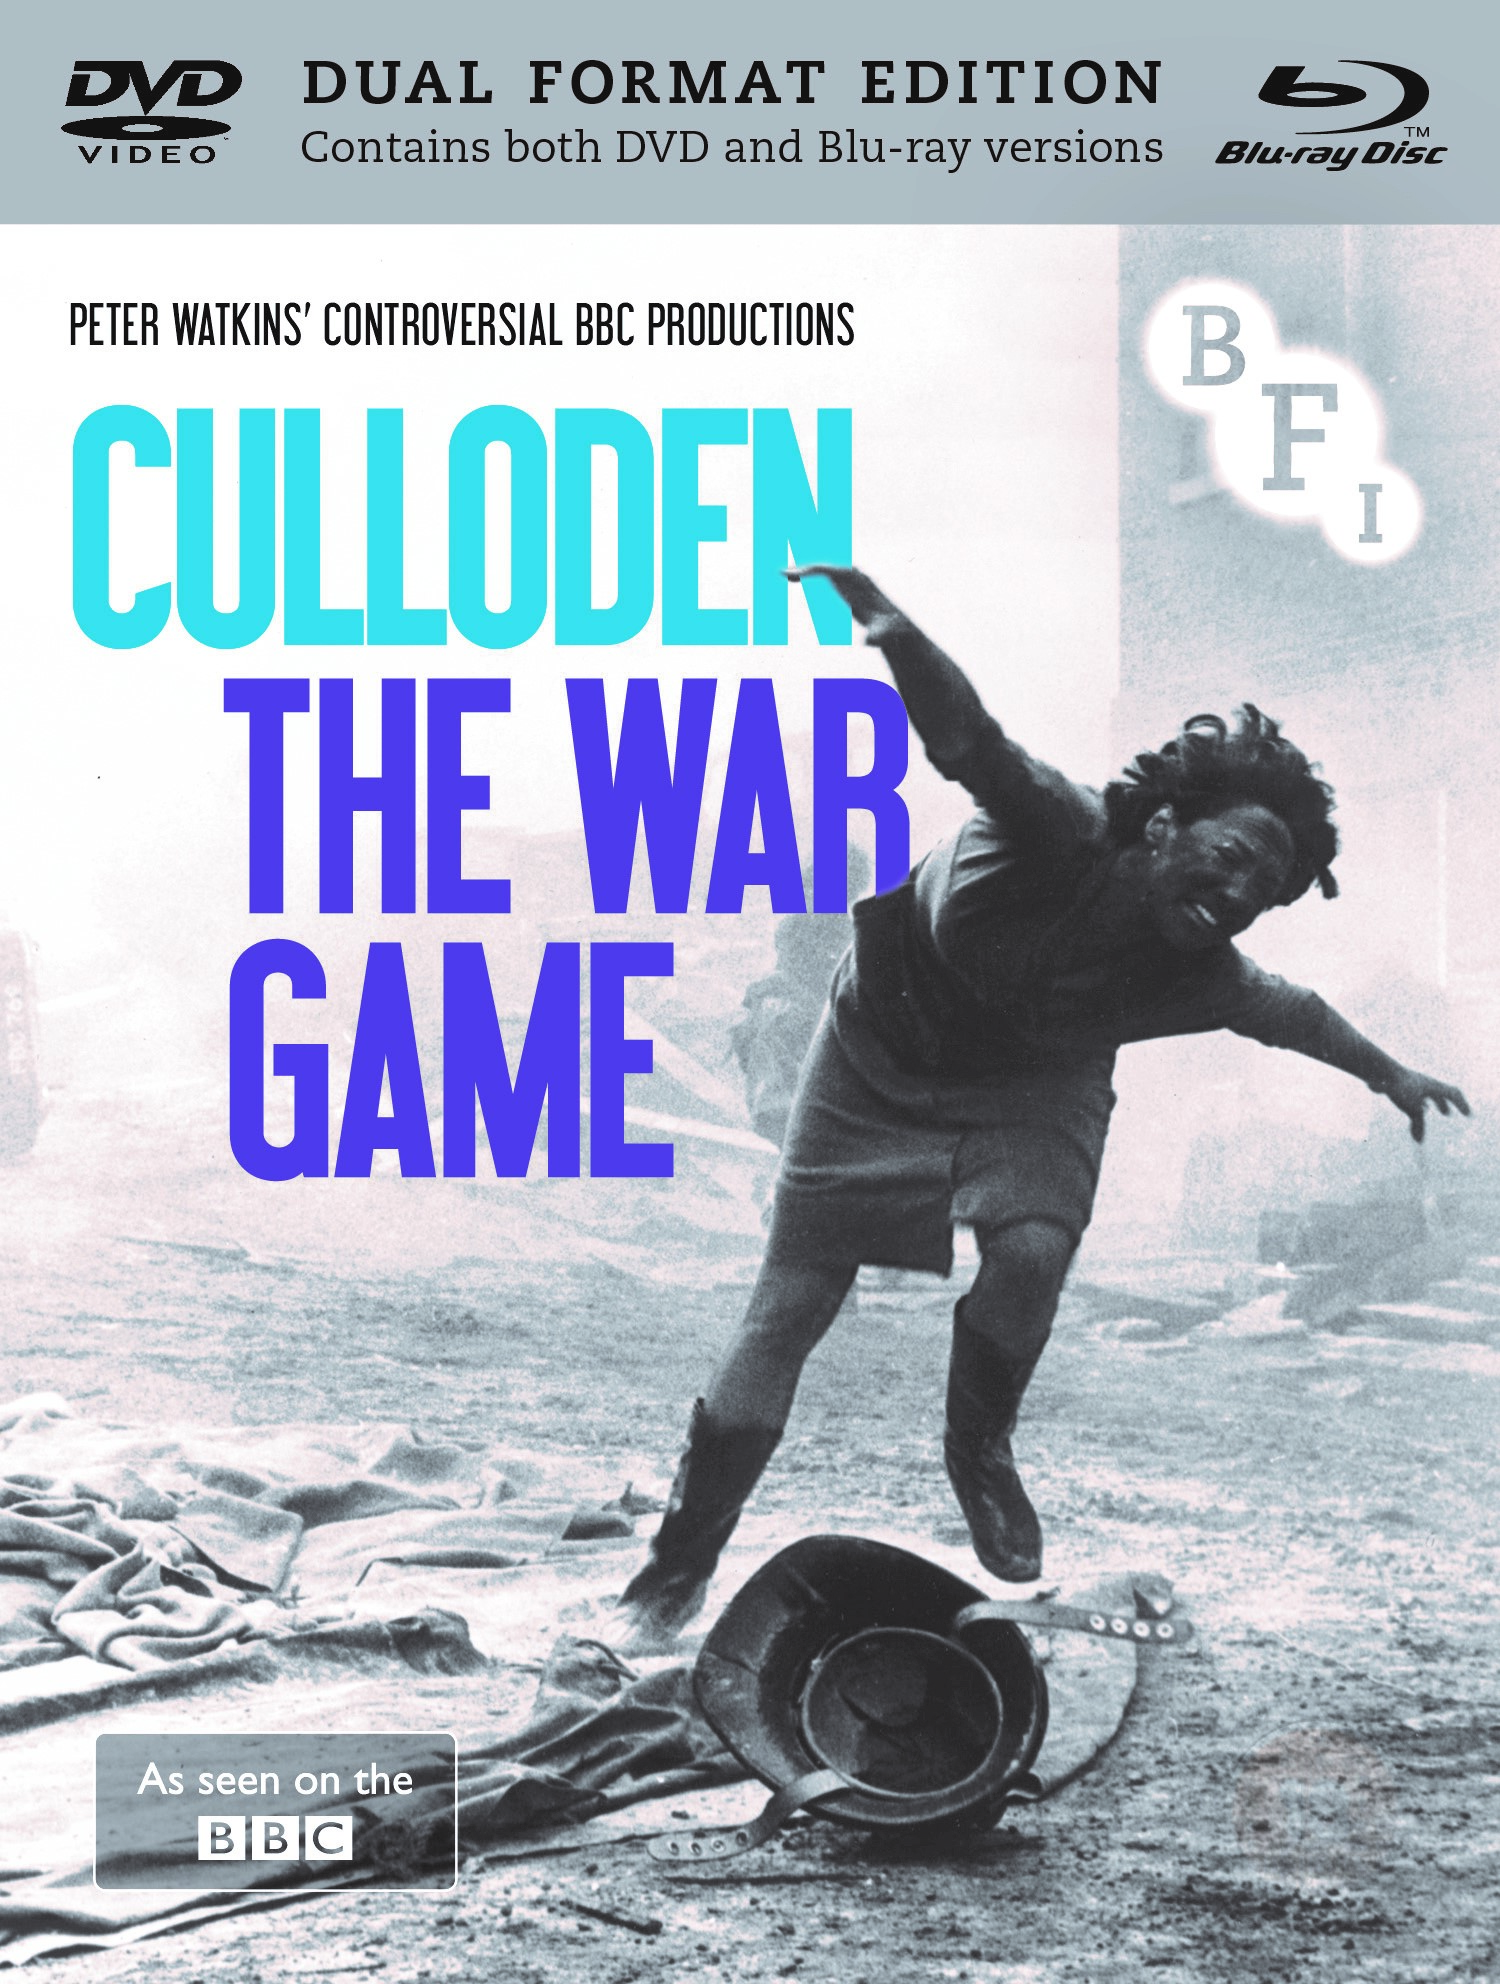 Buy Culloden / The War Game (Dual Format)